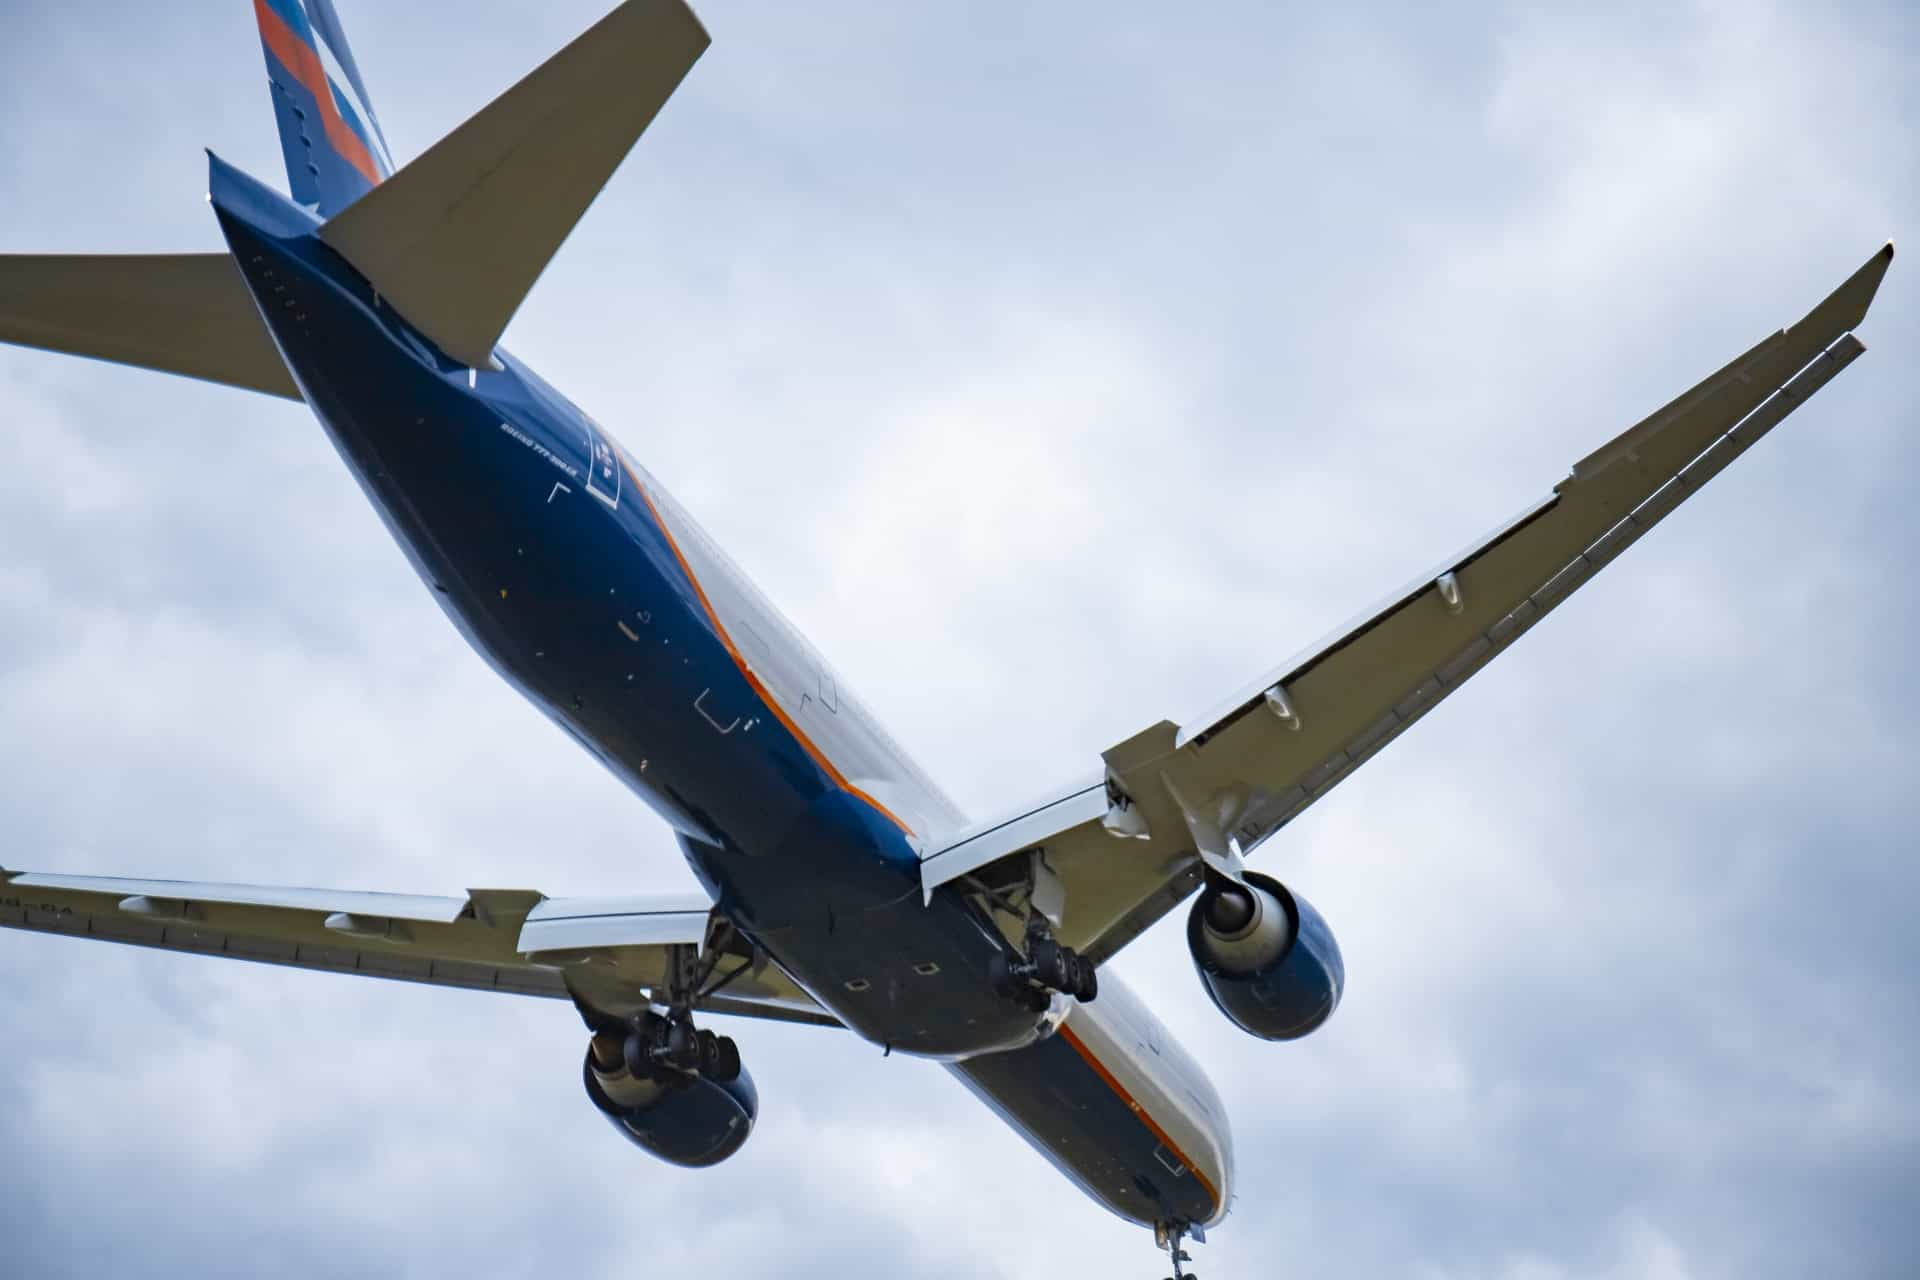 Domestic Russian routes such as the Aeroflot one provide demand opportunities